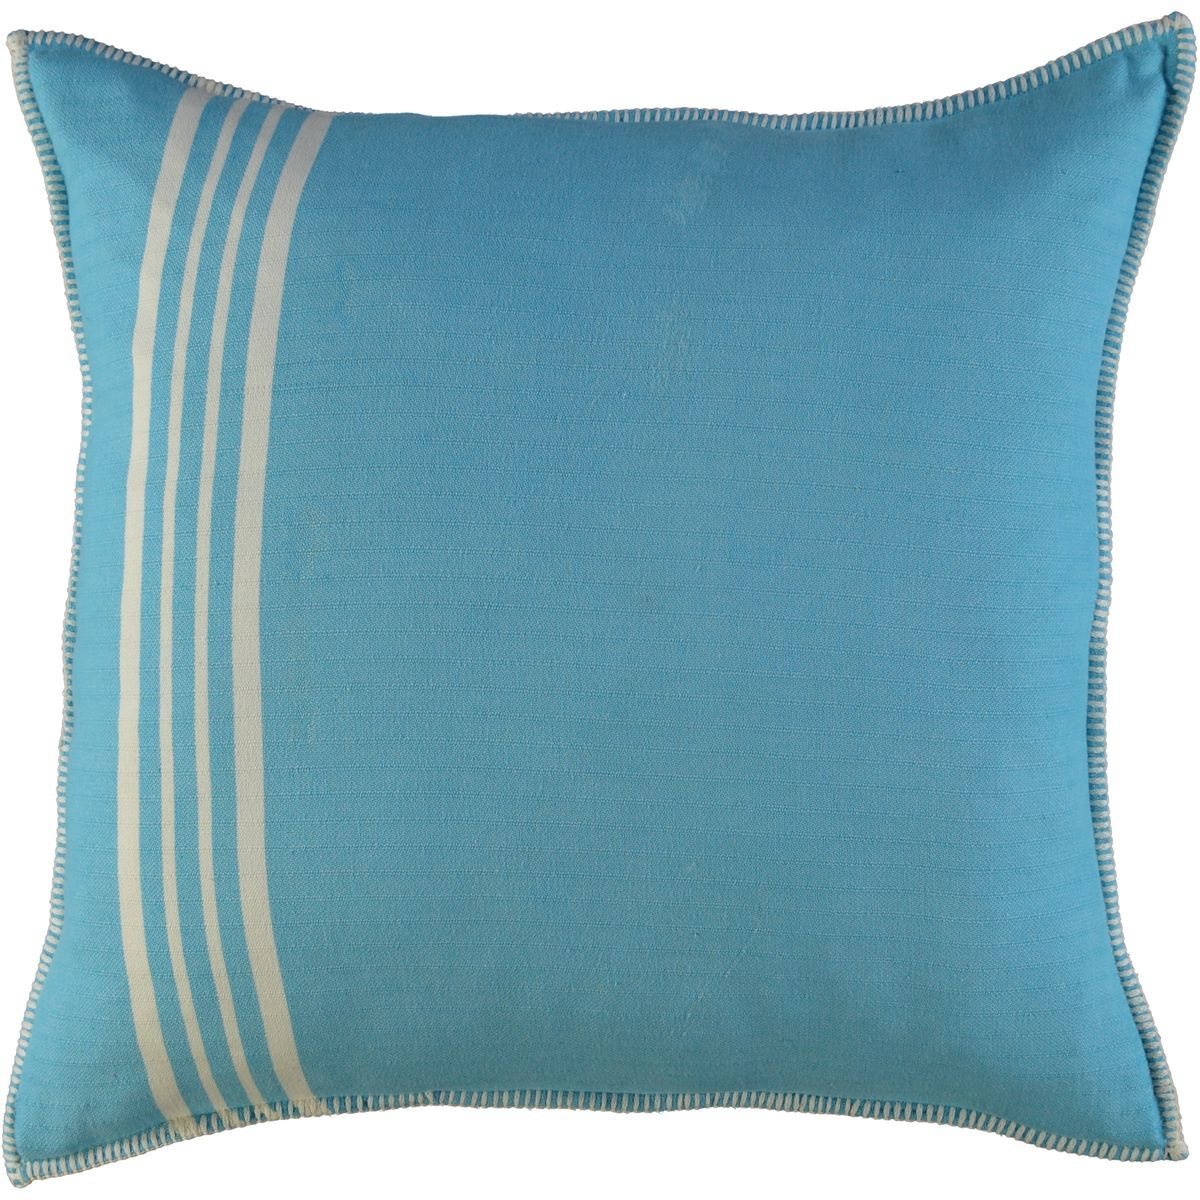 Cushion Cover Sultan - Turquoise / 65x65